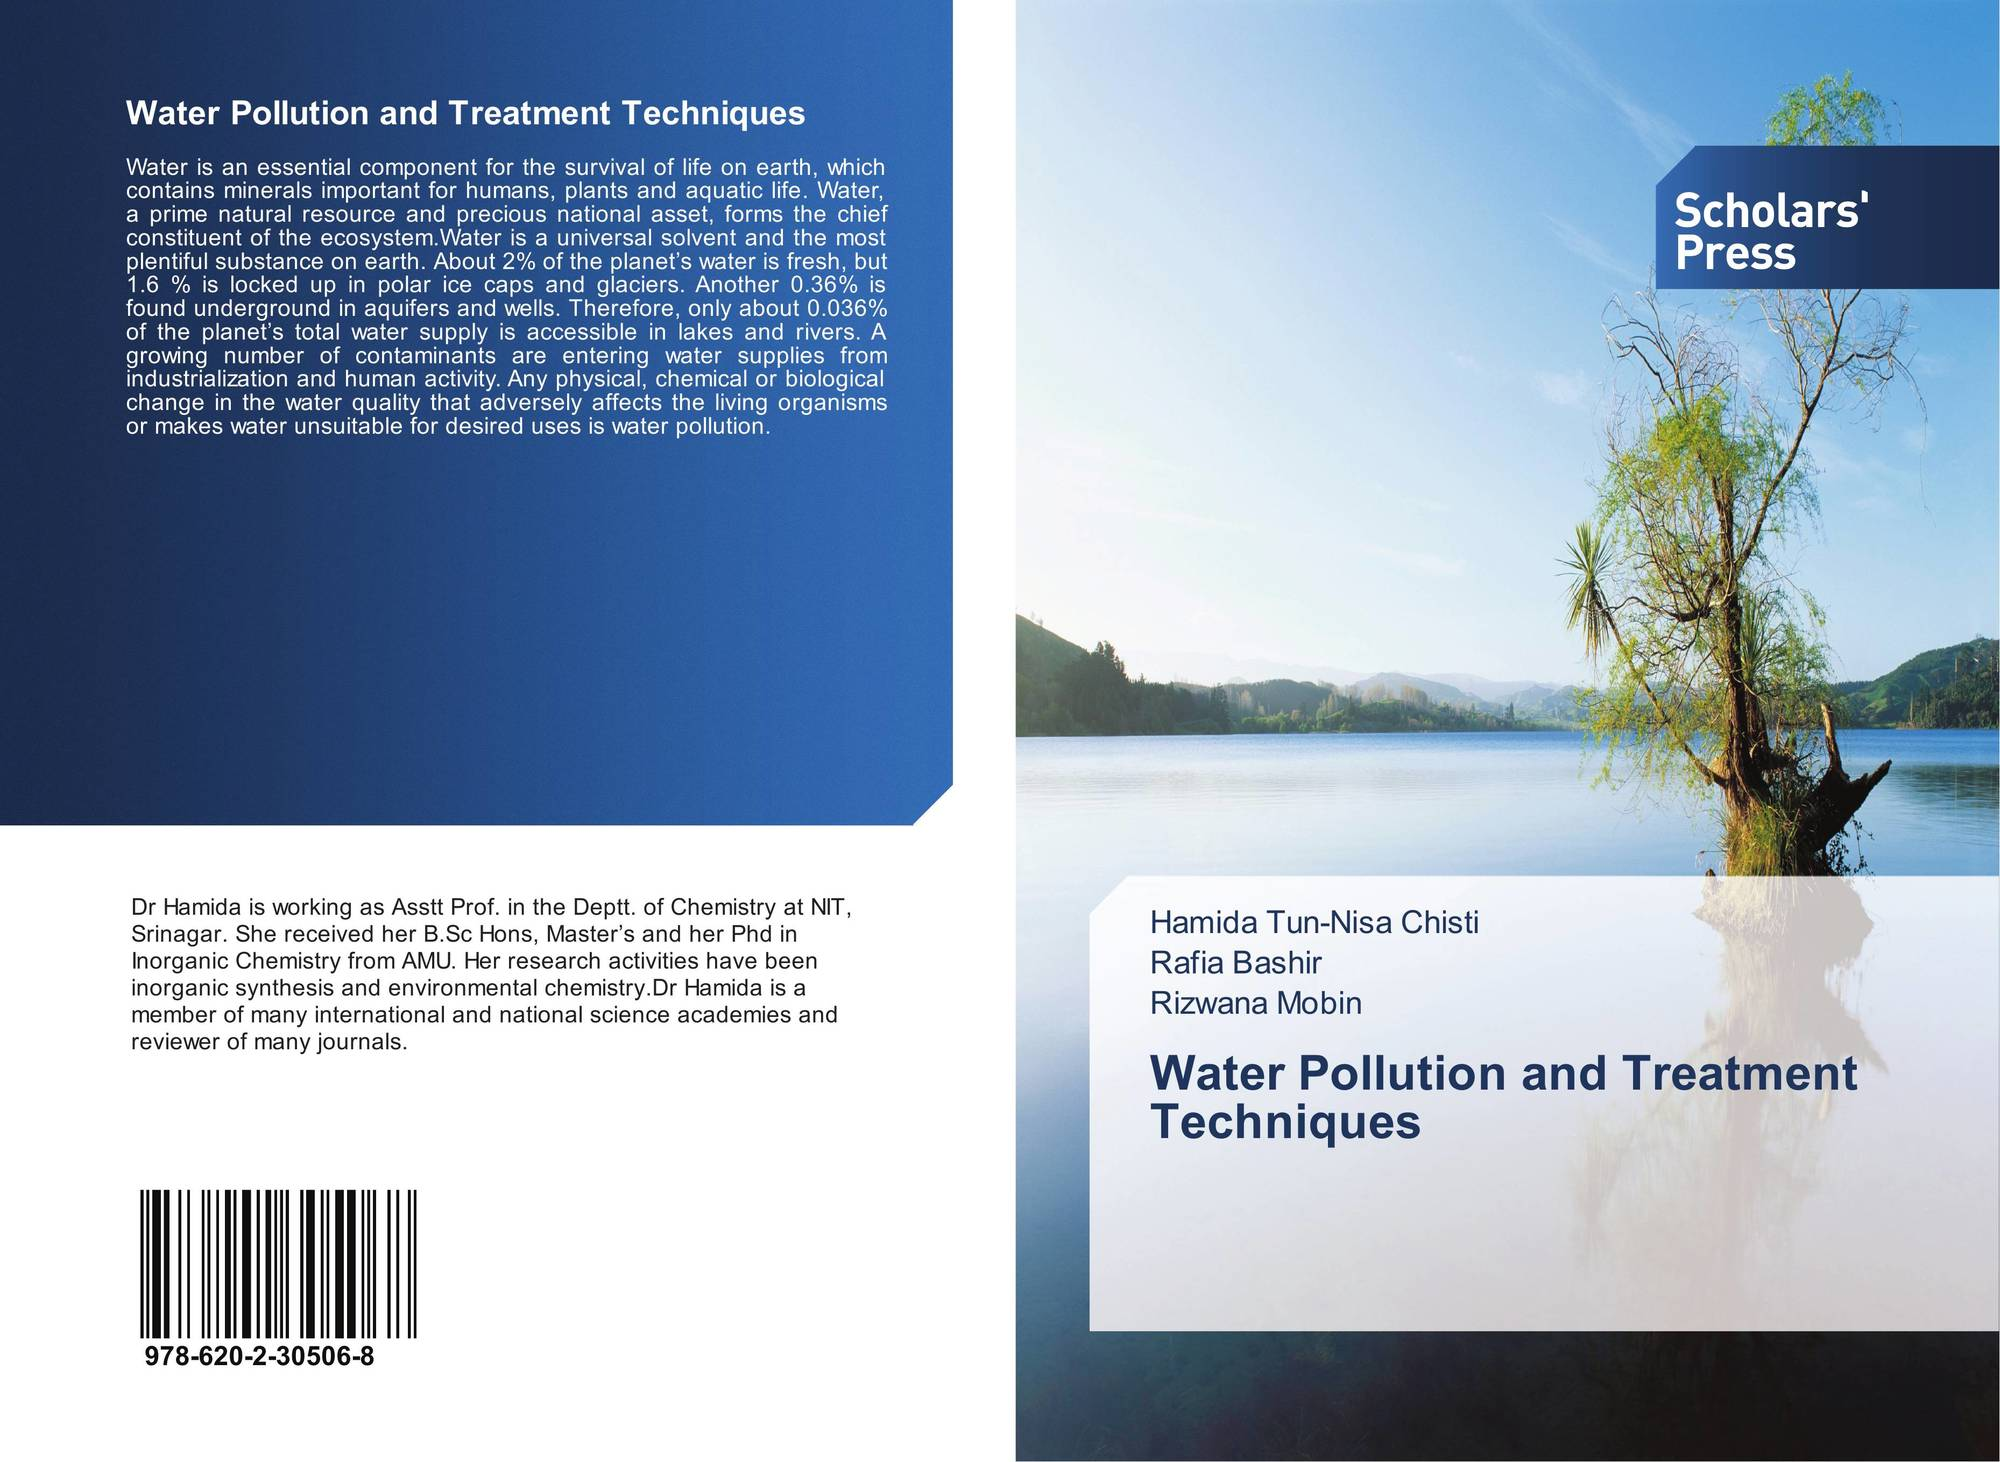 water quality and contamination research and These factories have caused severe contamination of water in this international journal of scientific and research for the present water quality.